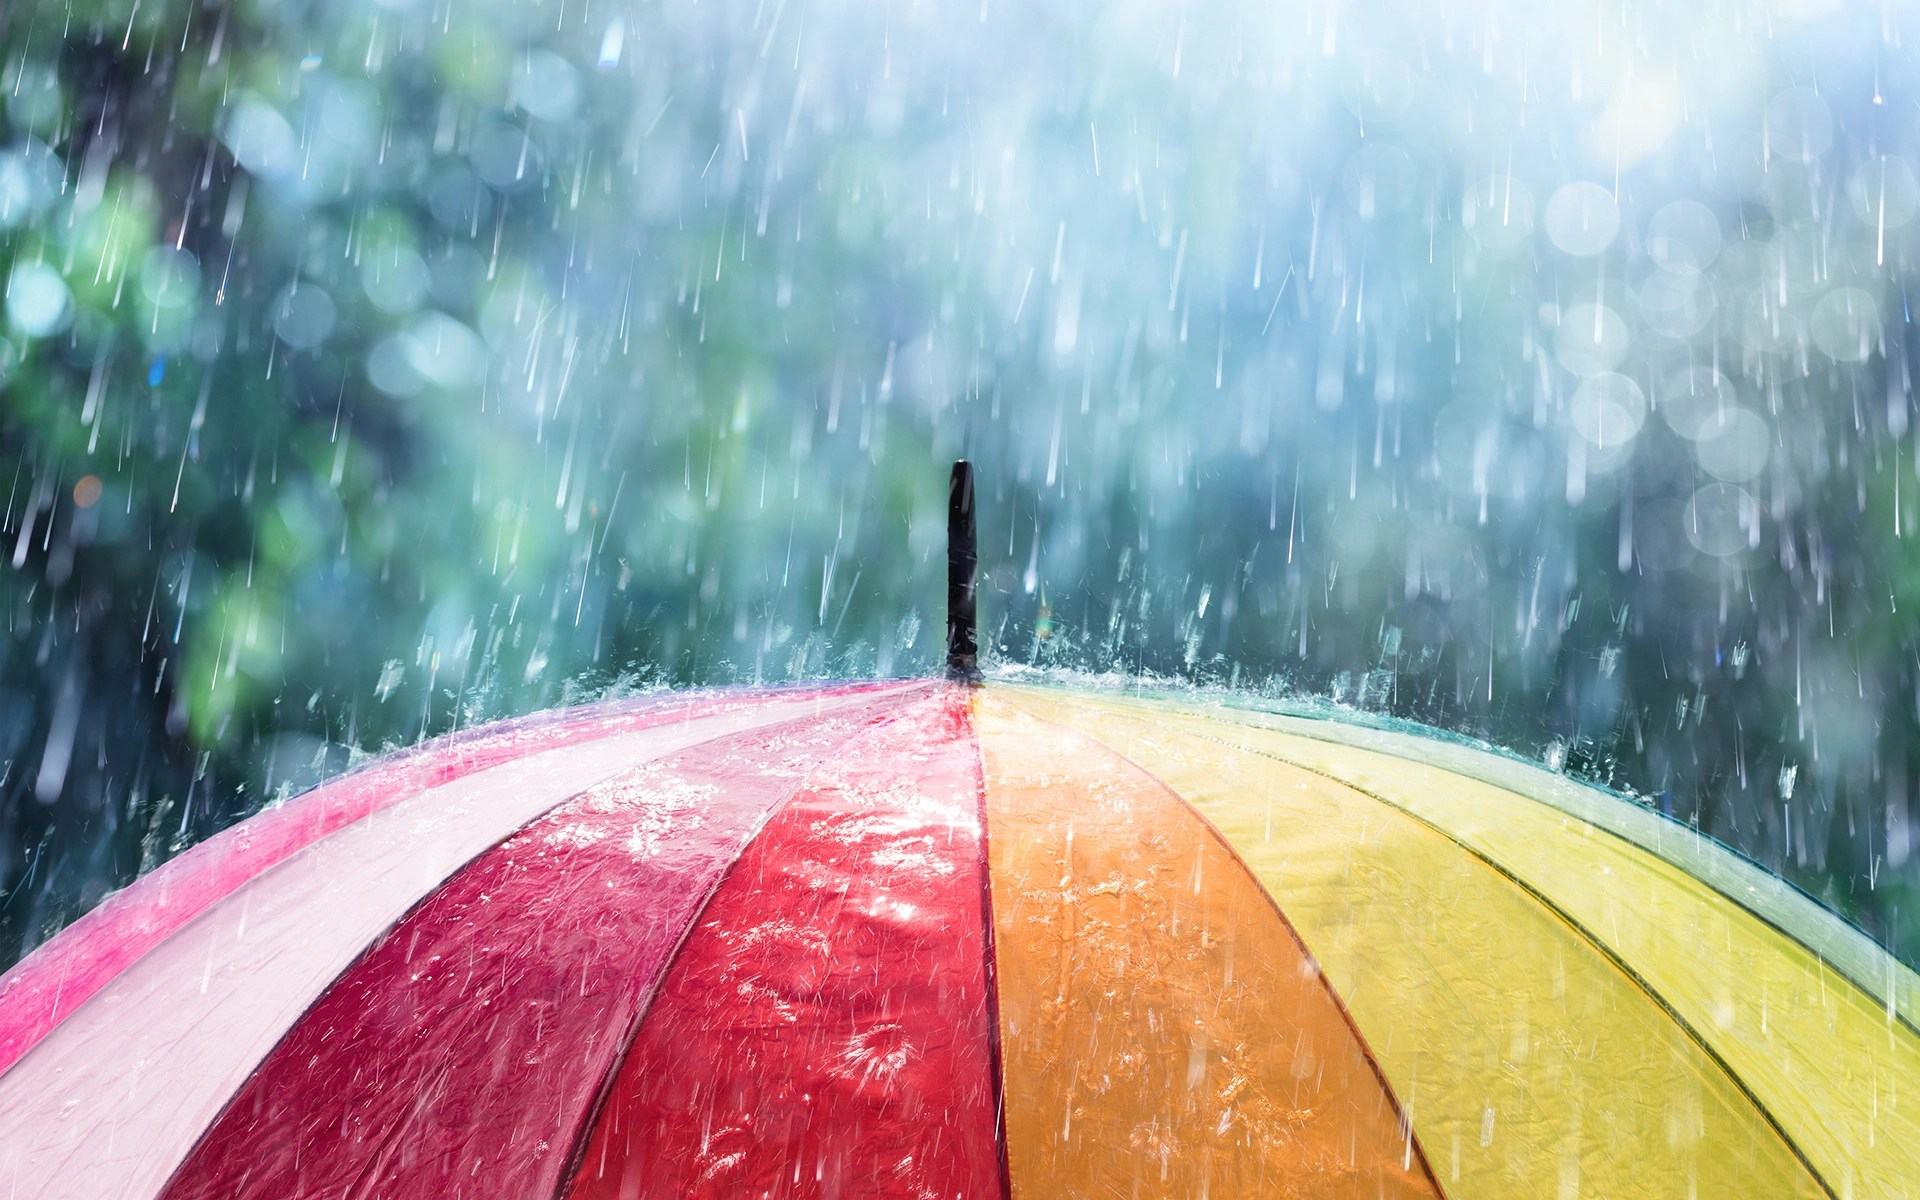 A Guided RAIN Meditation to Cultivate Compassion - Image of rain falling on an umbrella